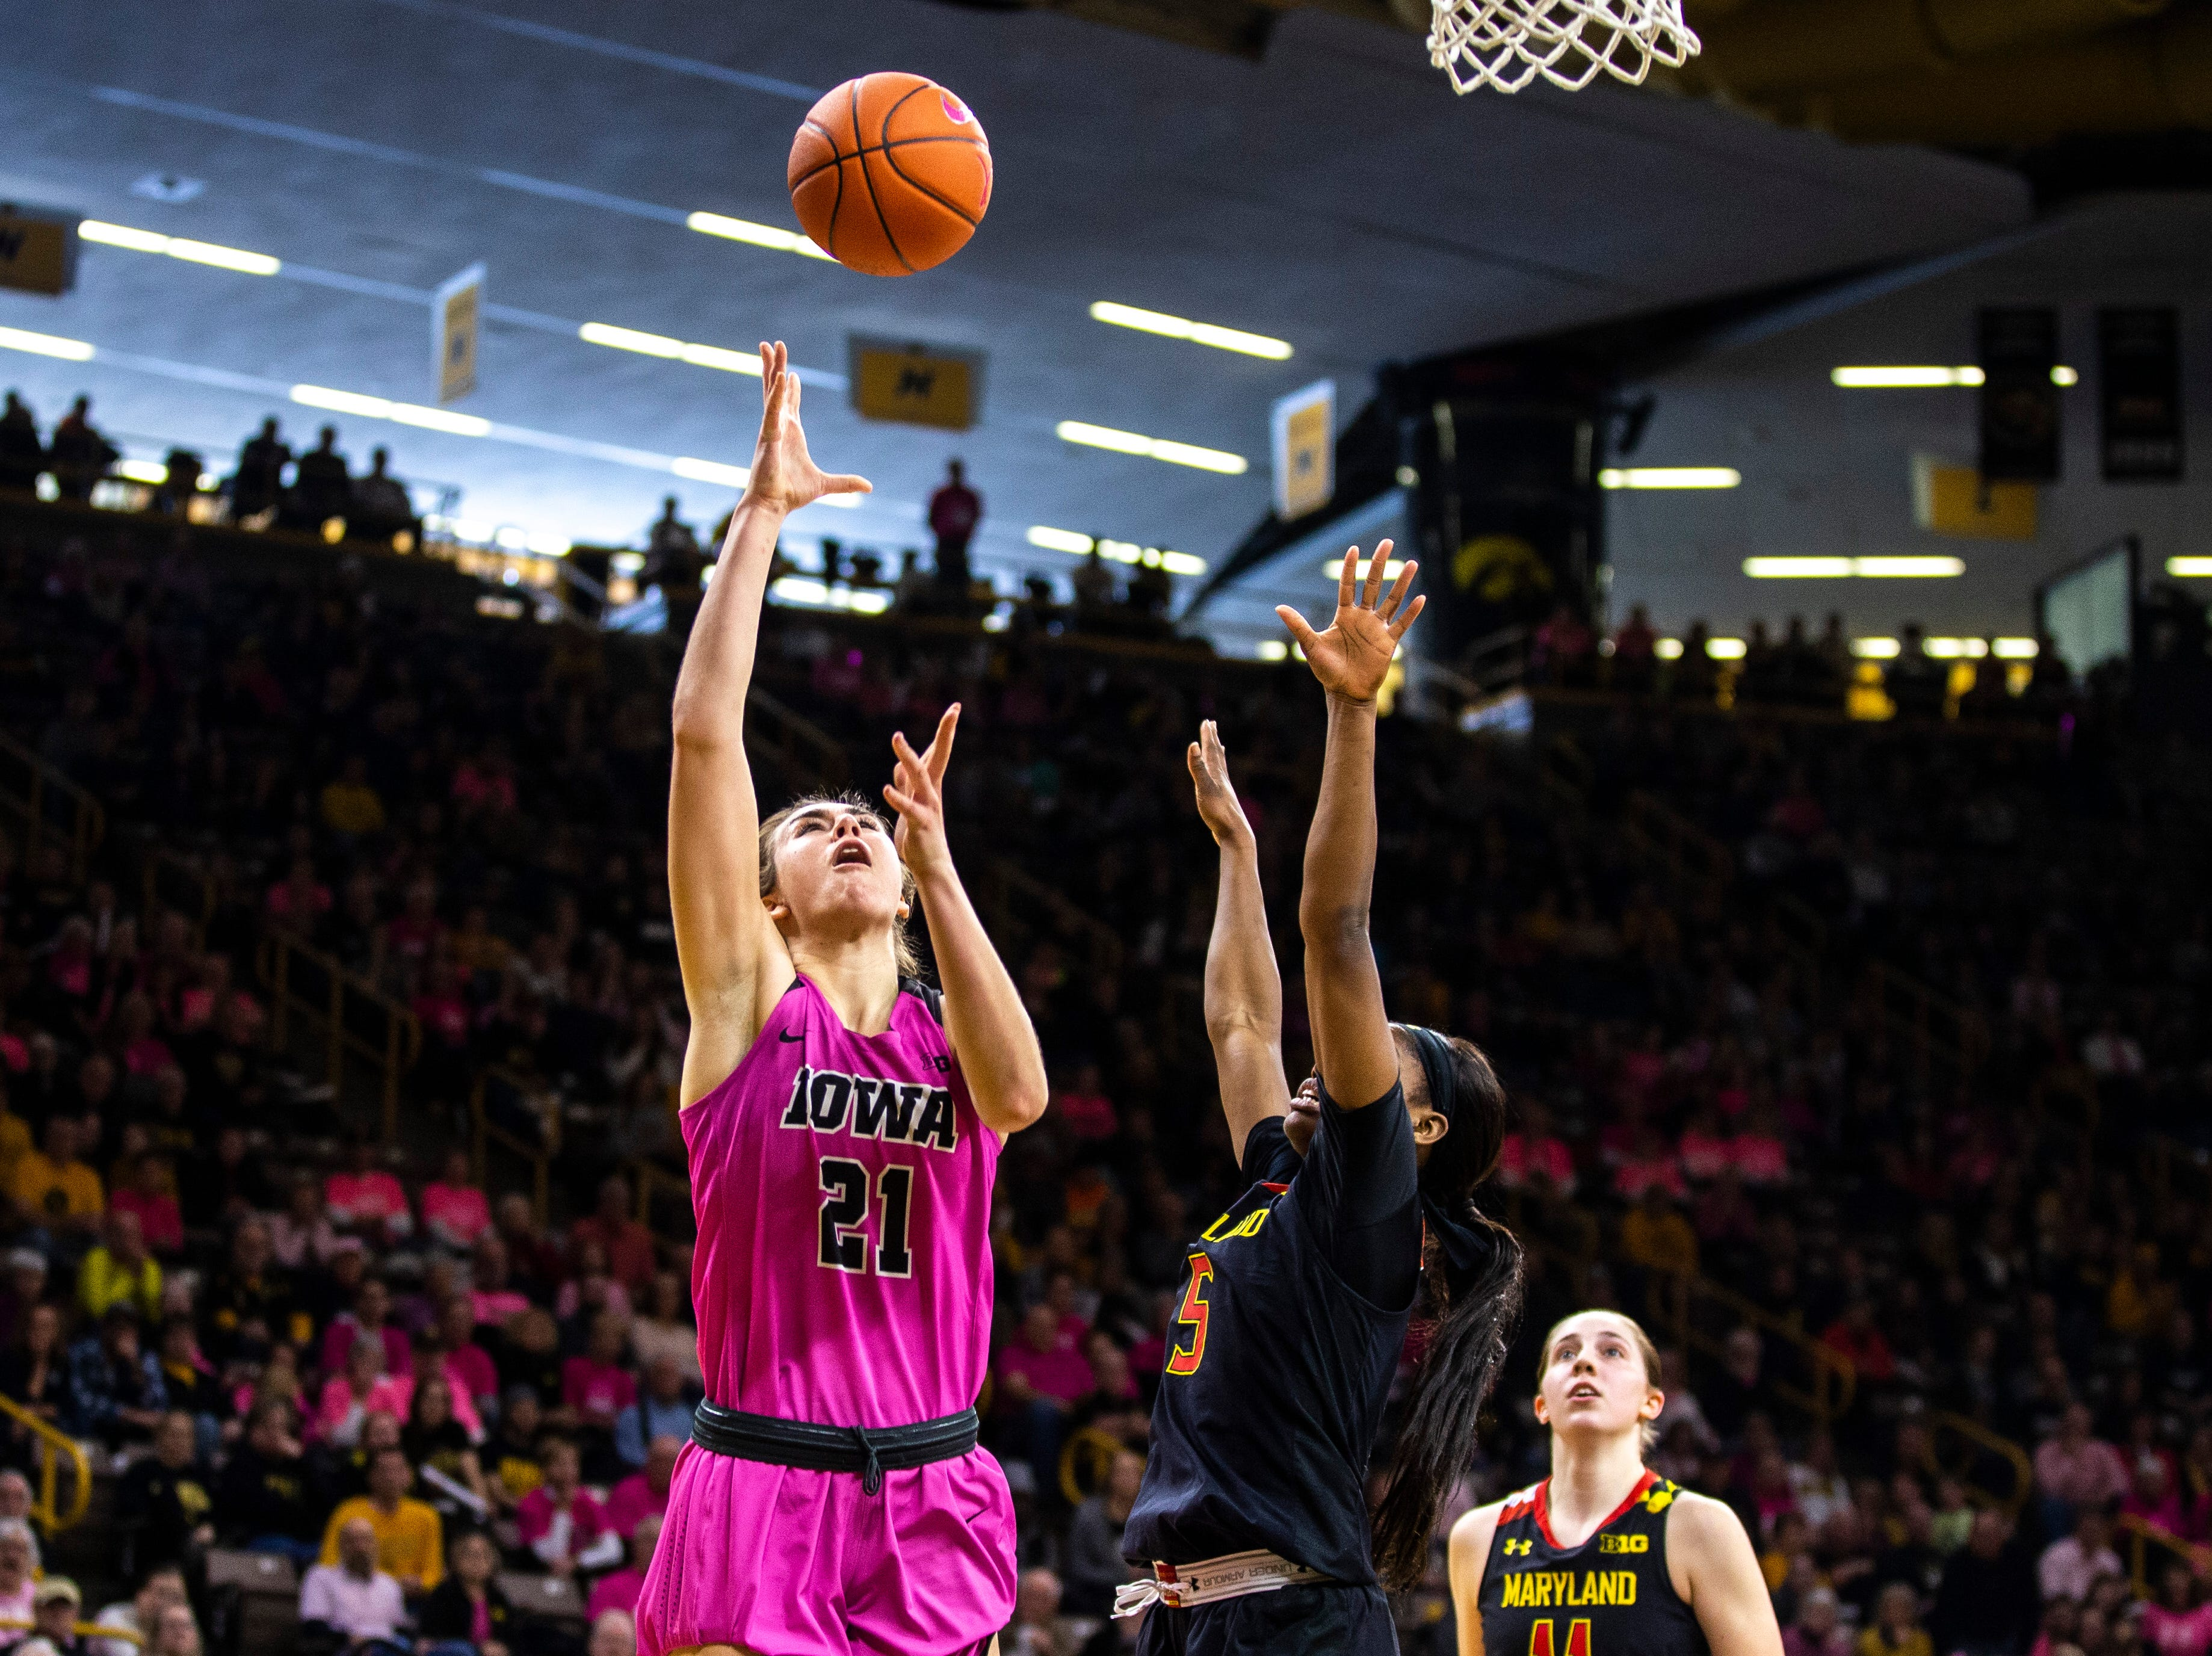 Iowa forward Hannah Stewart (21) makes a layup while Maryland guard Kaila Charles (5) defends during a NCAA Big Ten Conference women's basketball game on Sunday, Feb. 17, 2019 at Carver-Hawkeye Arena in Iowa City, Iowa.